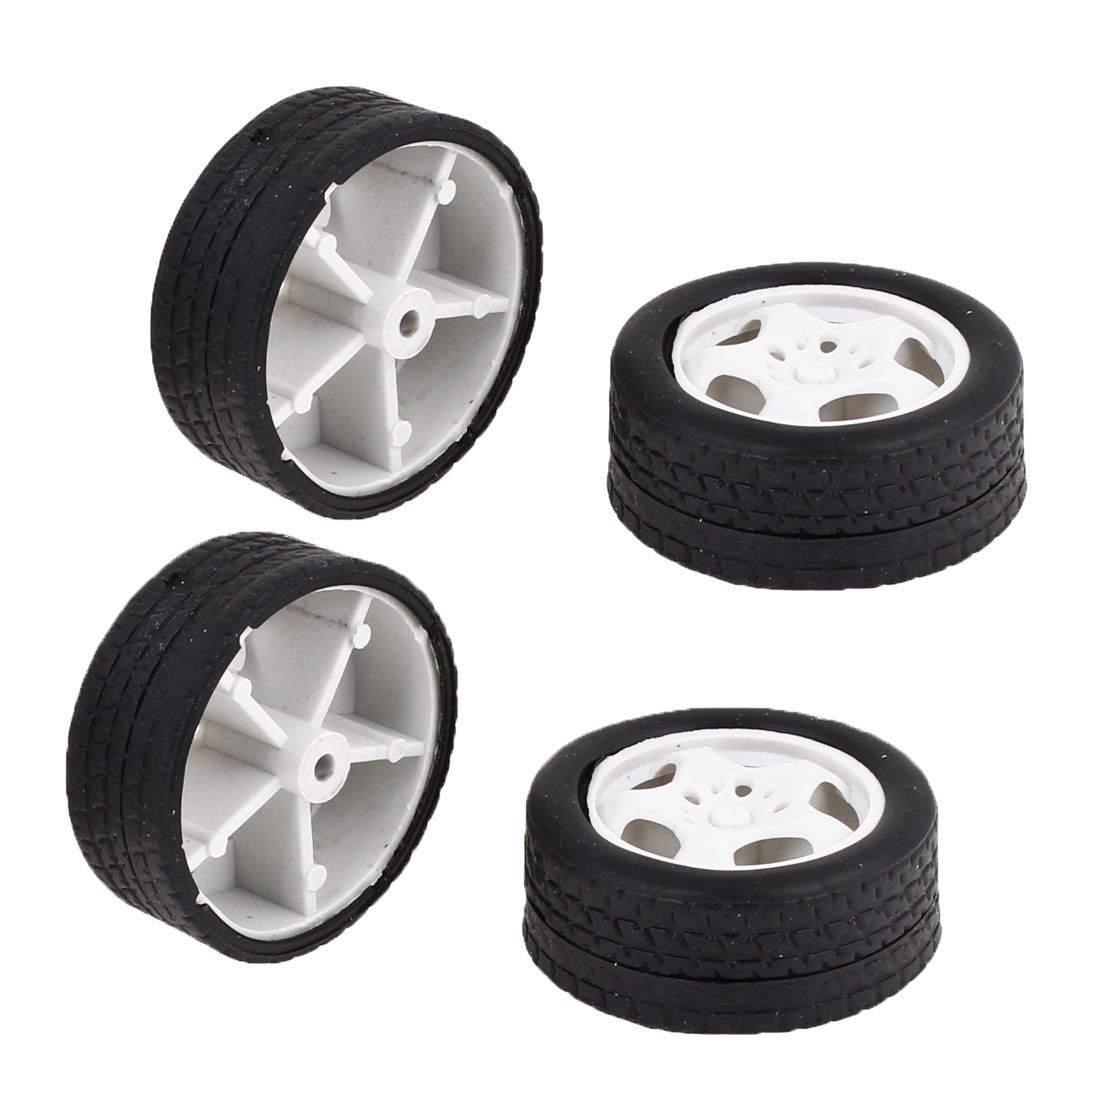 Children Toy Car Truck Vehicles 34mm Dia Rubber Roll Wheels Replacement 4 Pcs